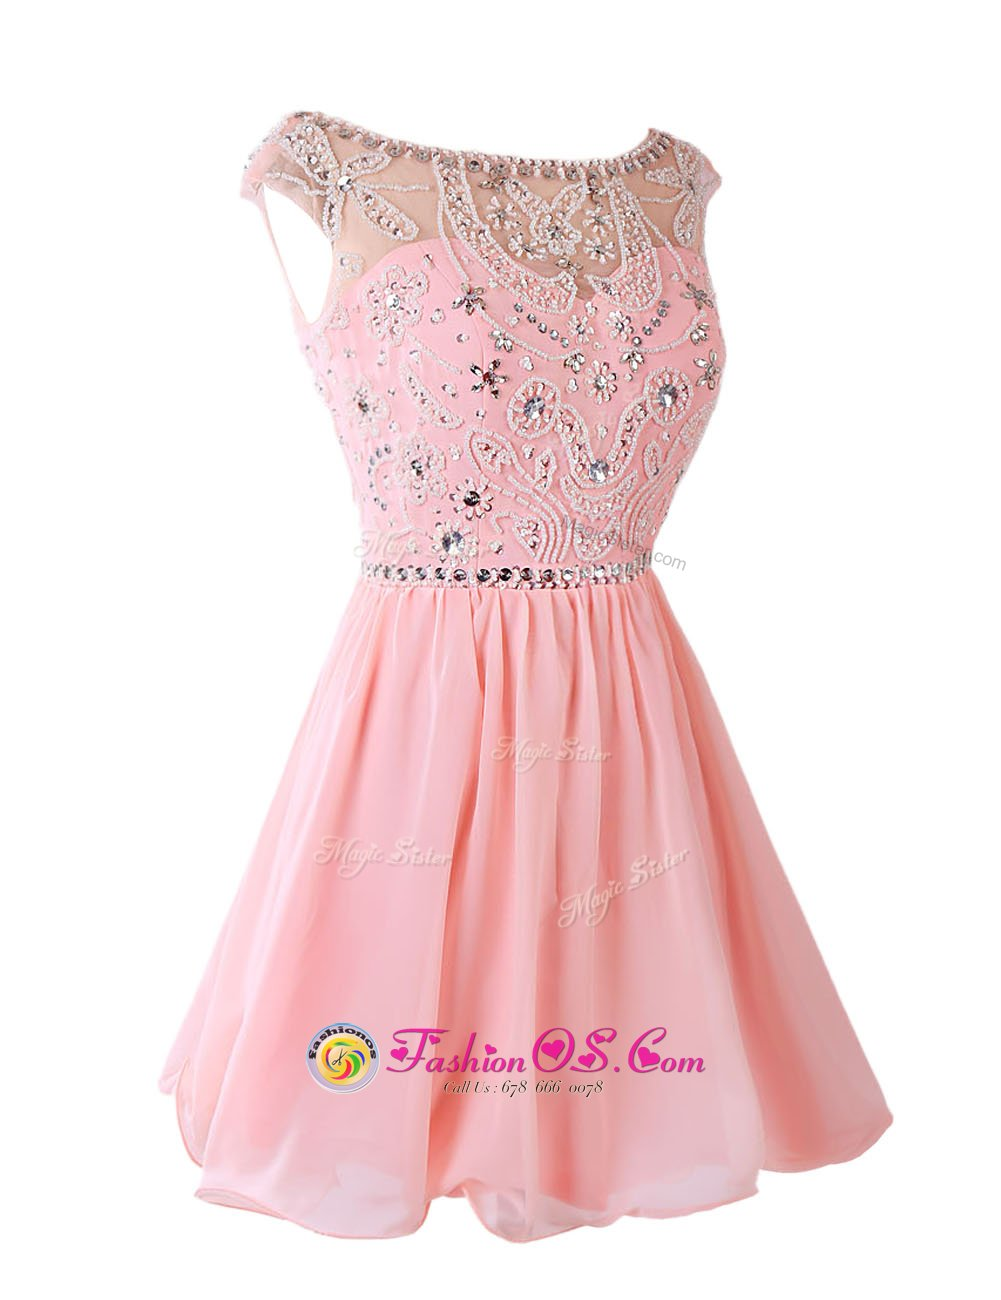 Chiffon Sleeveless Knee Length Prom Evening Gown and Sashes|ribbons